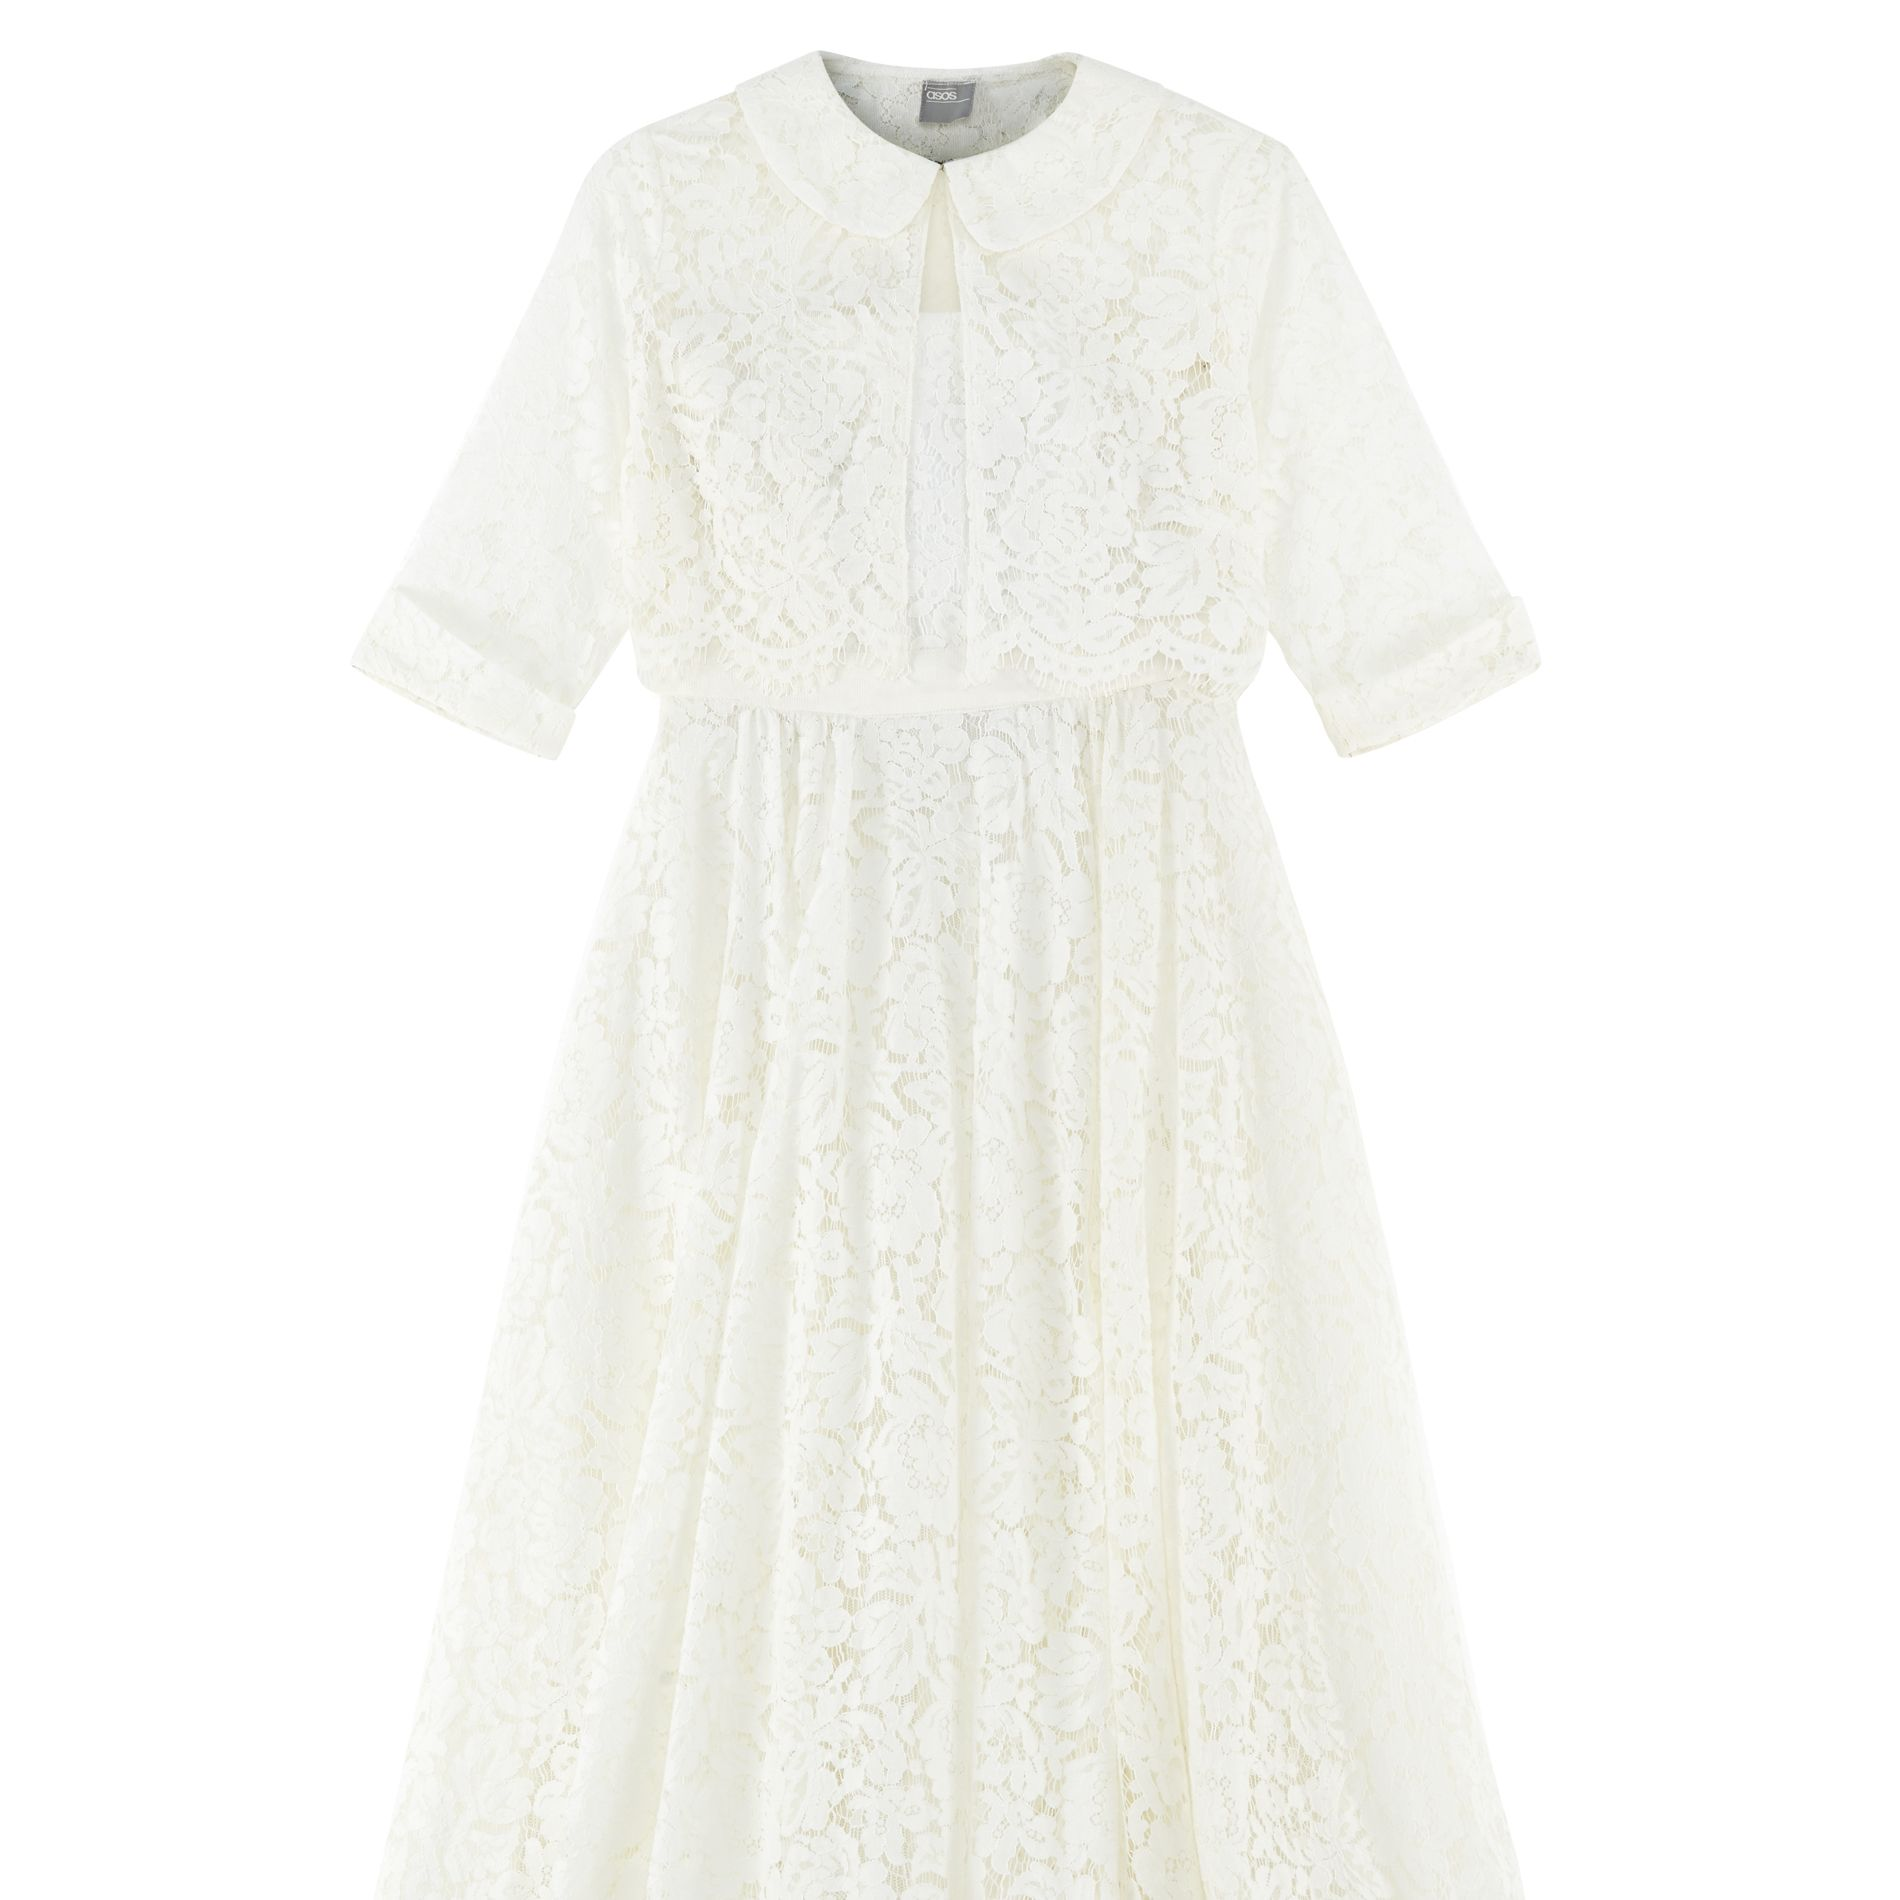 ASOS are doing a wedding dress collection and it's the best news ever